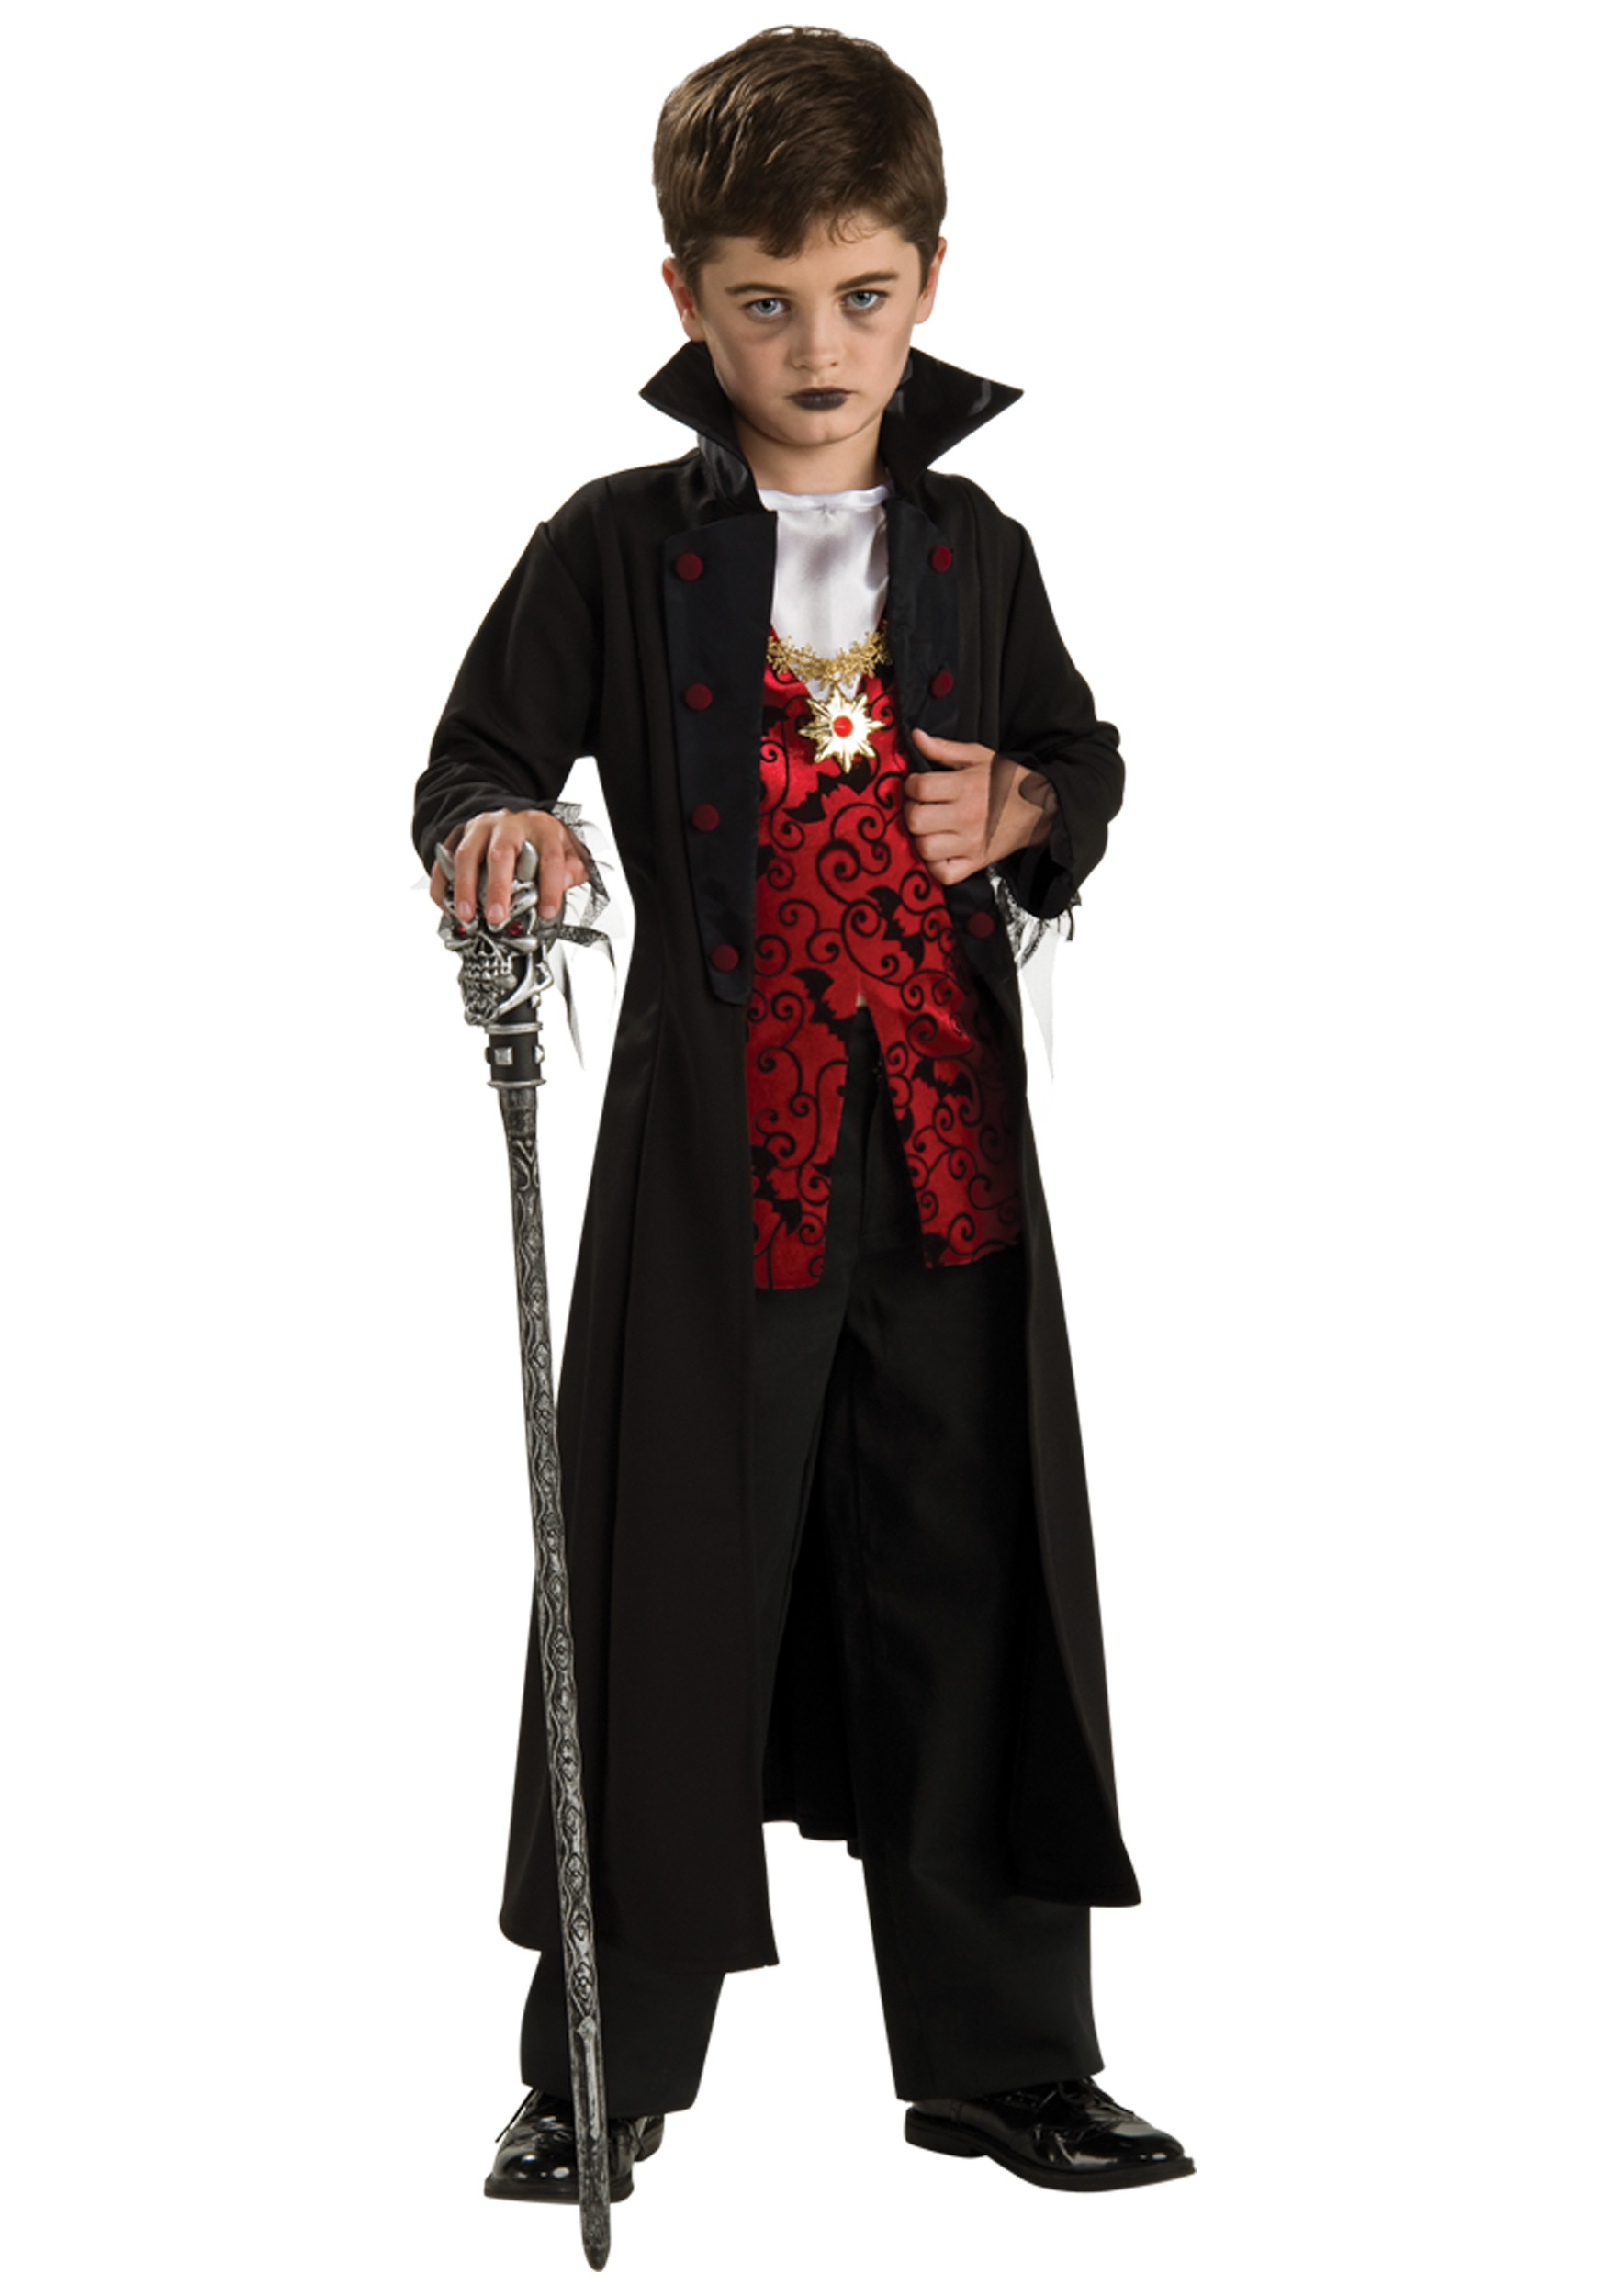 Boys V&ire Prince Costume  sc 1 st  Halloween Costume : costumes for kids boys  - Germanpascual.Com